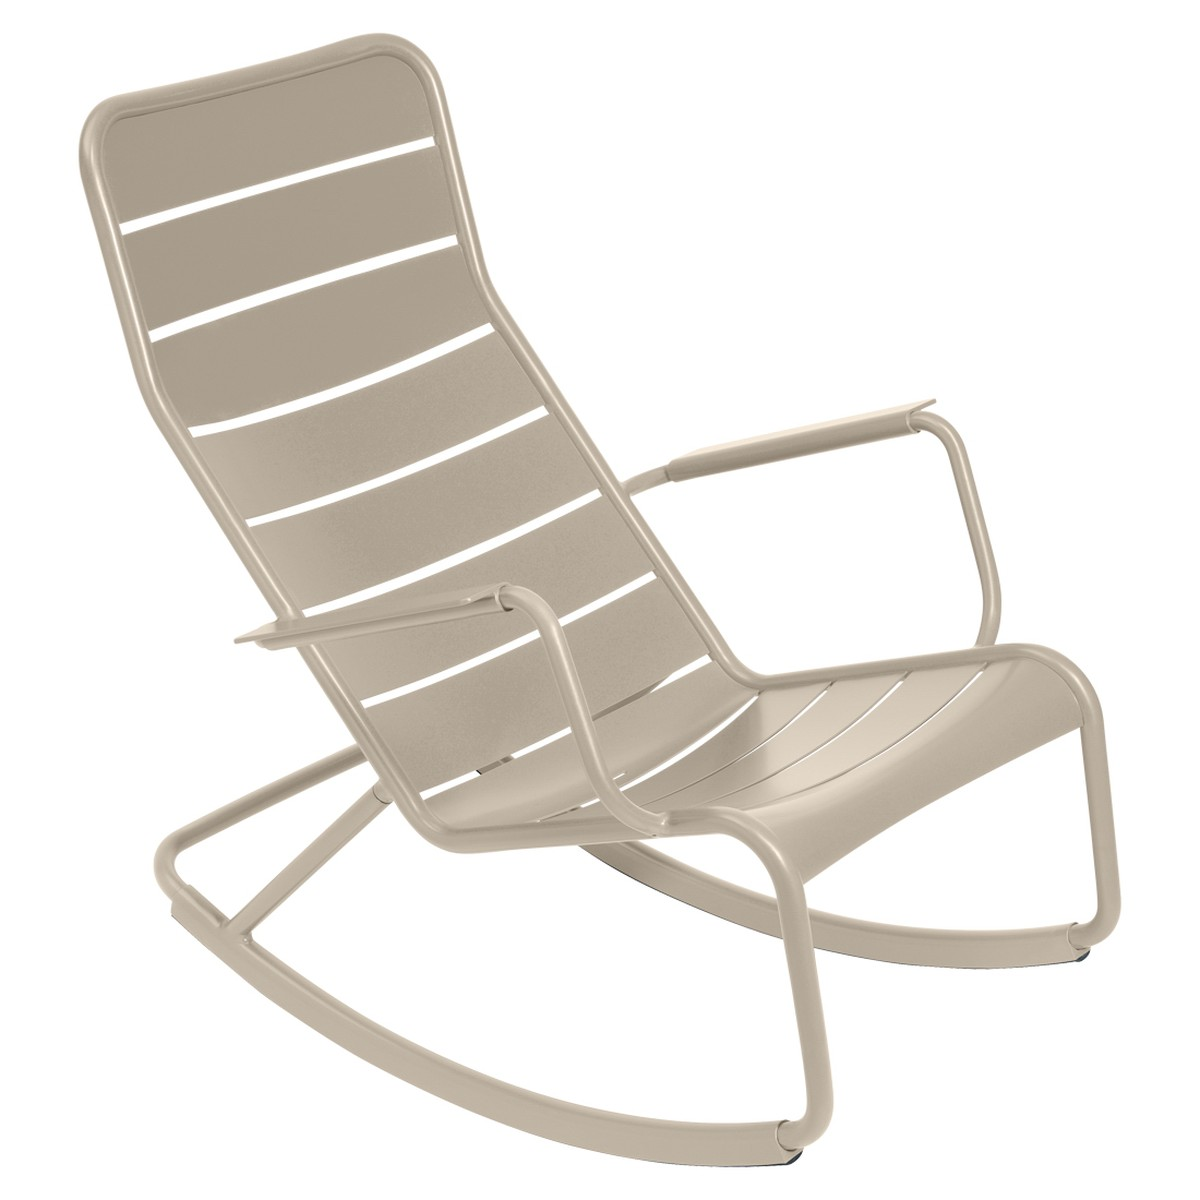 Fermob LUXEMBOURG Rocking Chair Luxembourg Beige 99x50x69.5cm